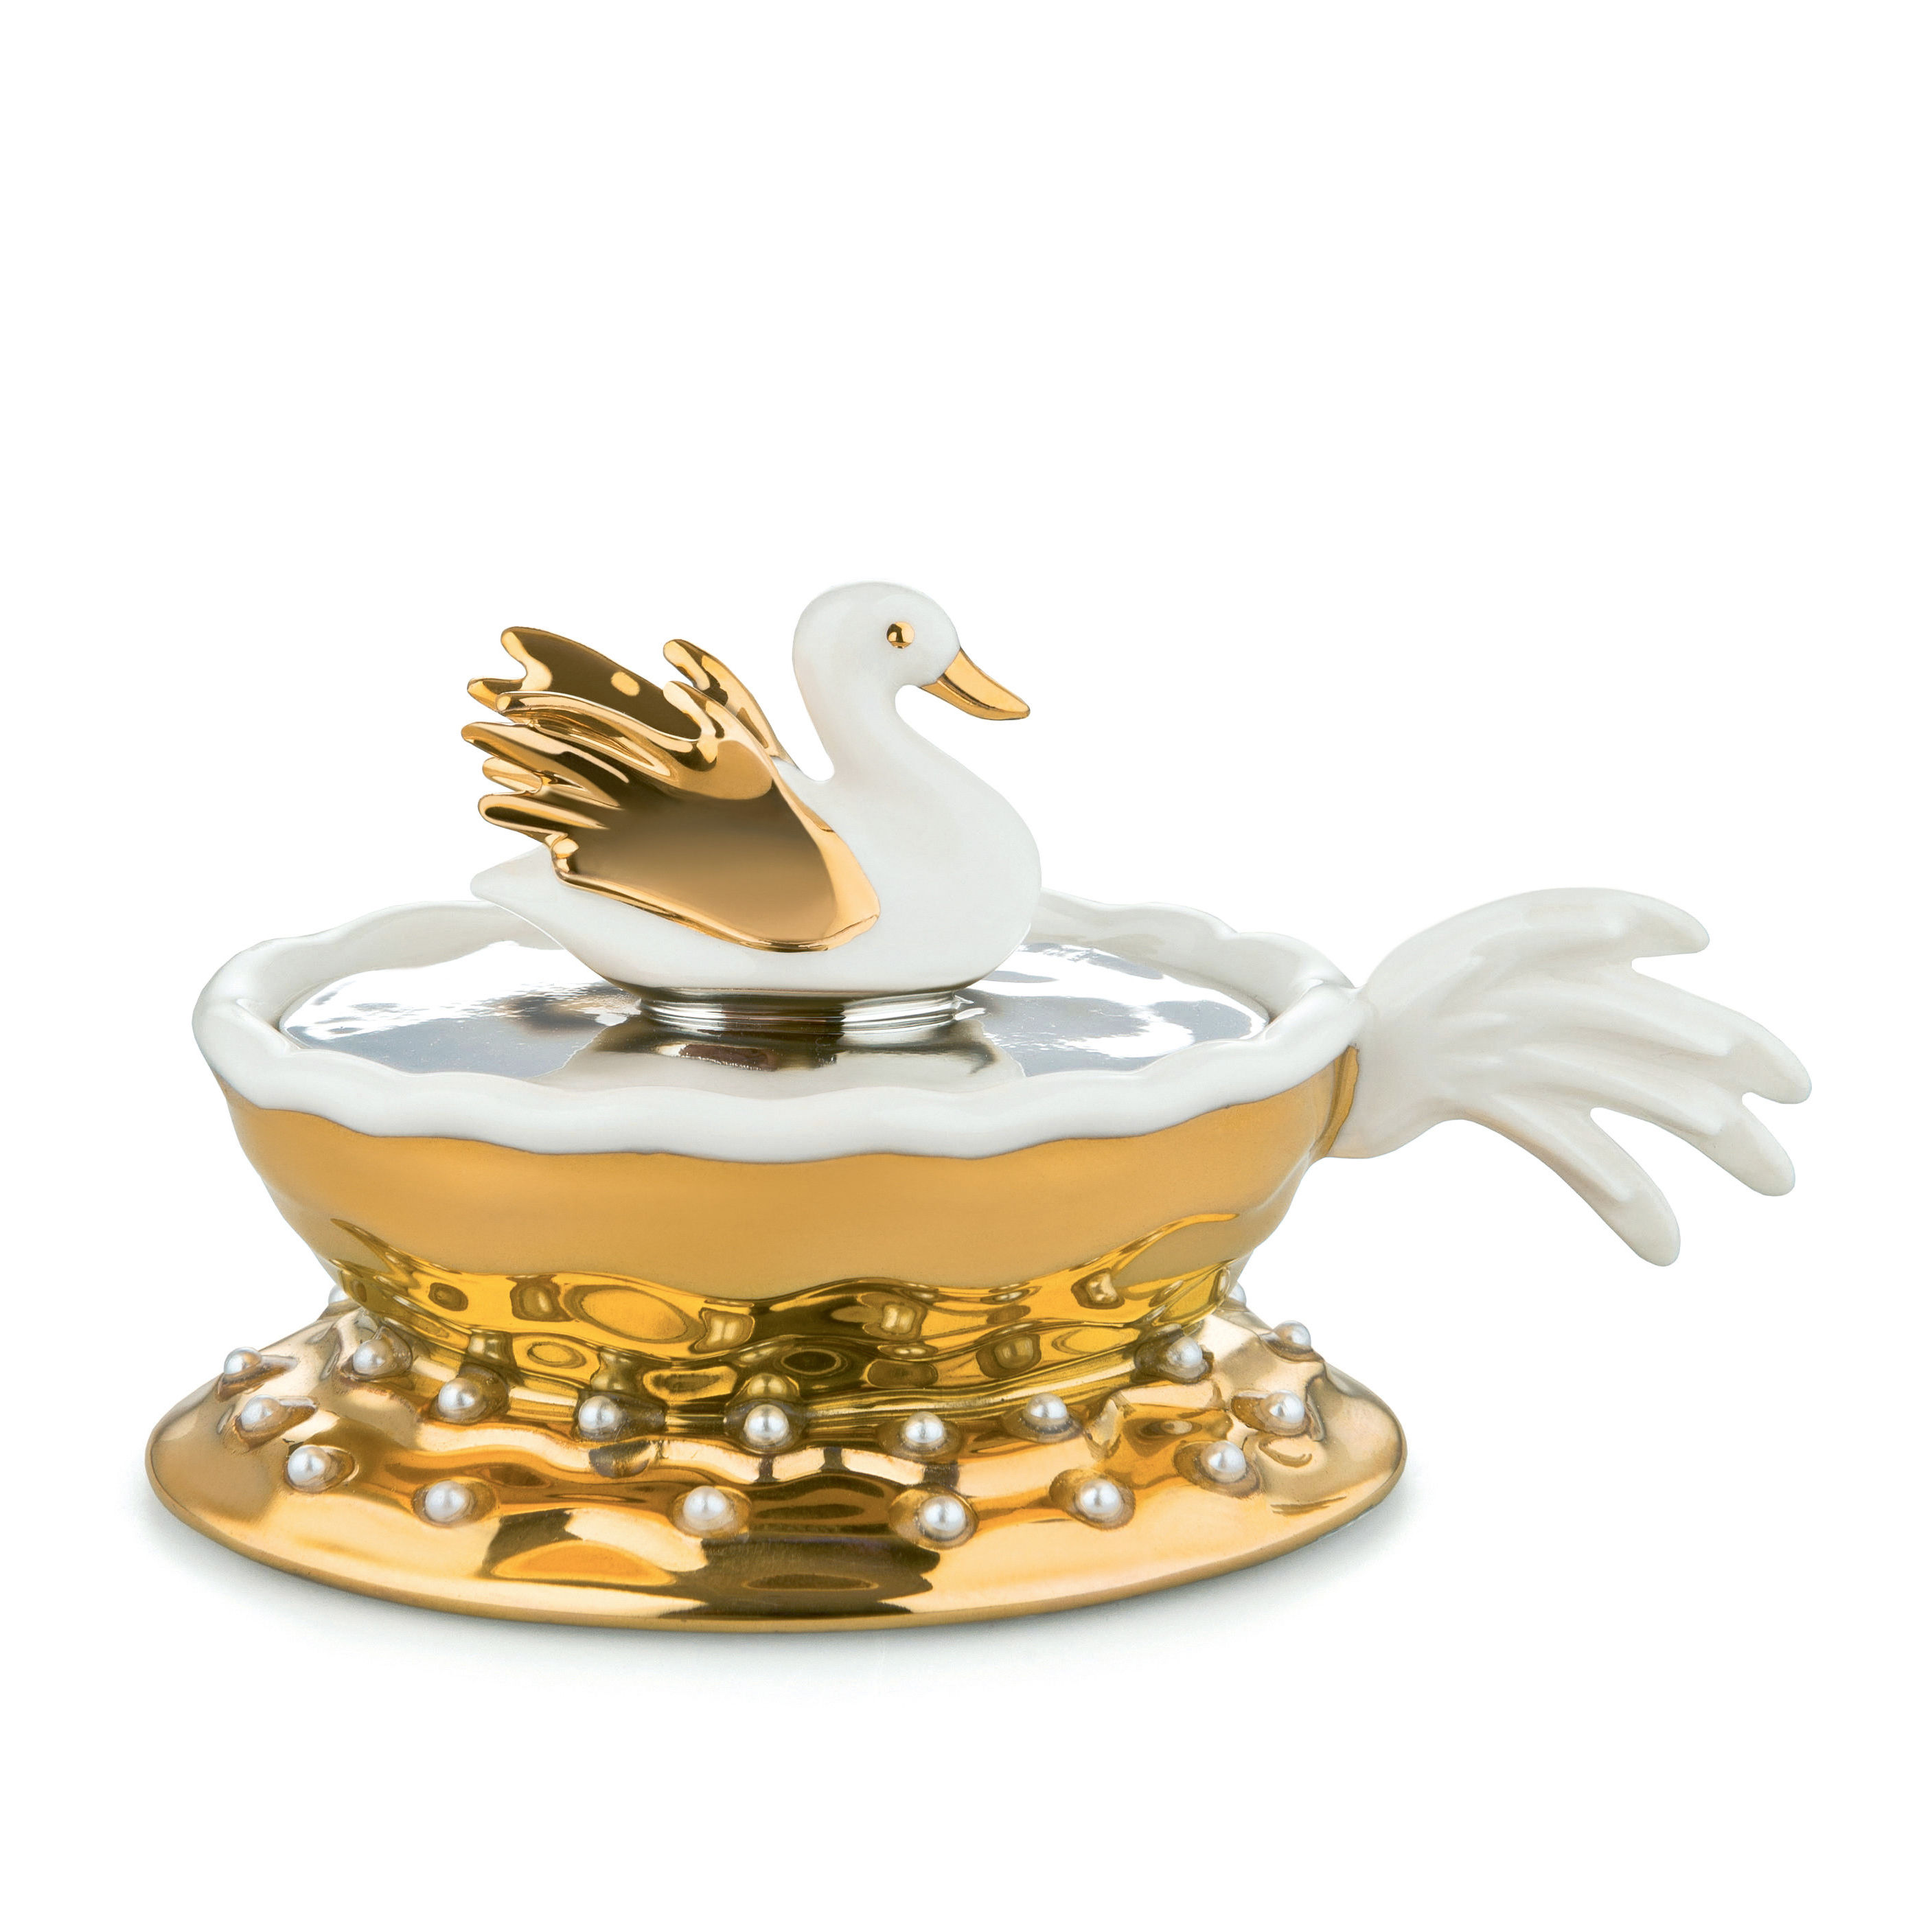 Decoration - Home Accessories - Narciso Bauble - / Hand-painted porcelain by Alessi - Gold & white - China